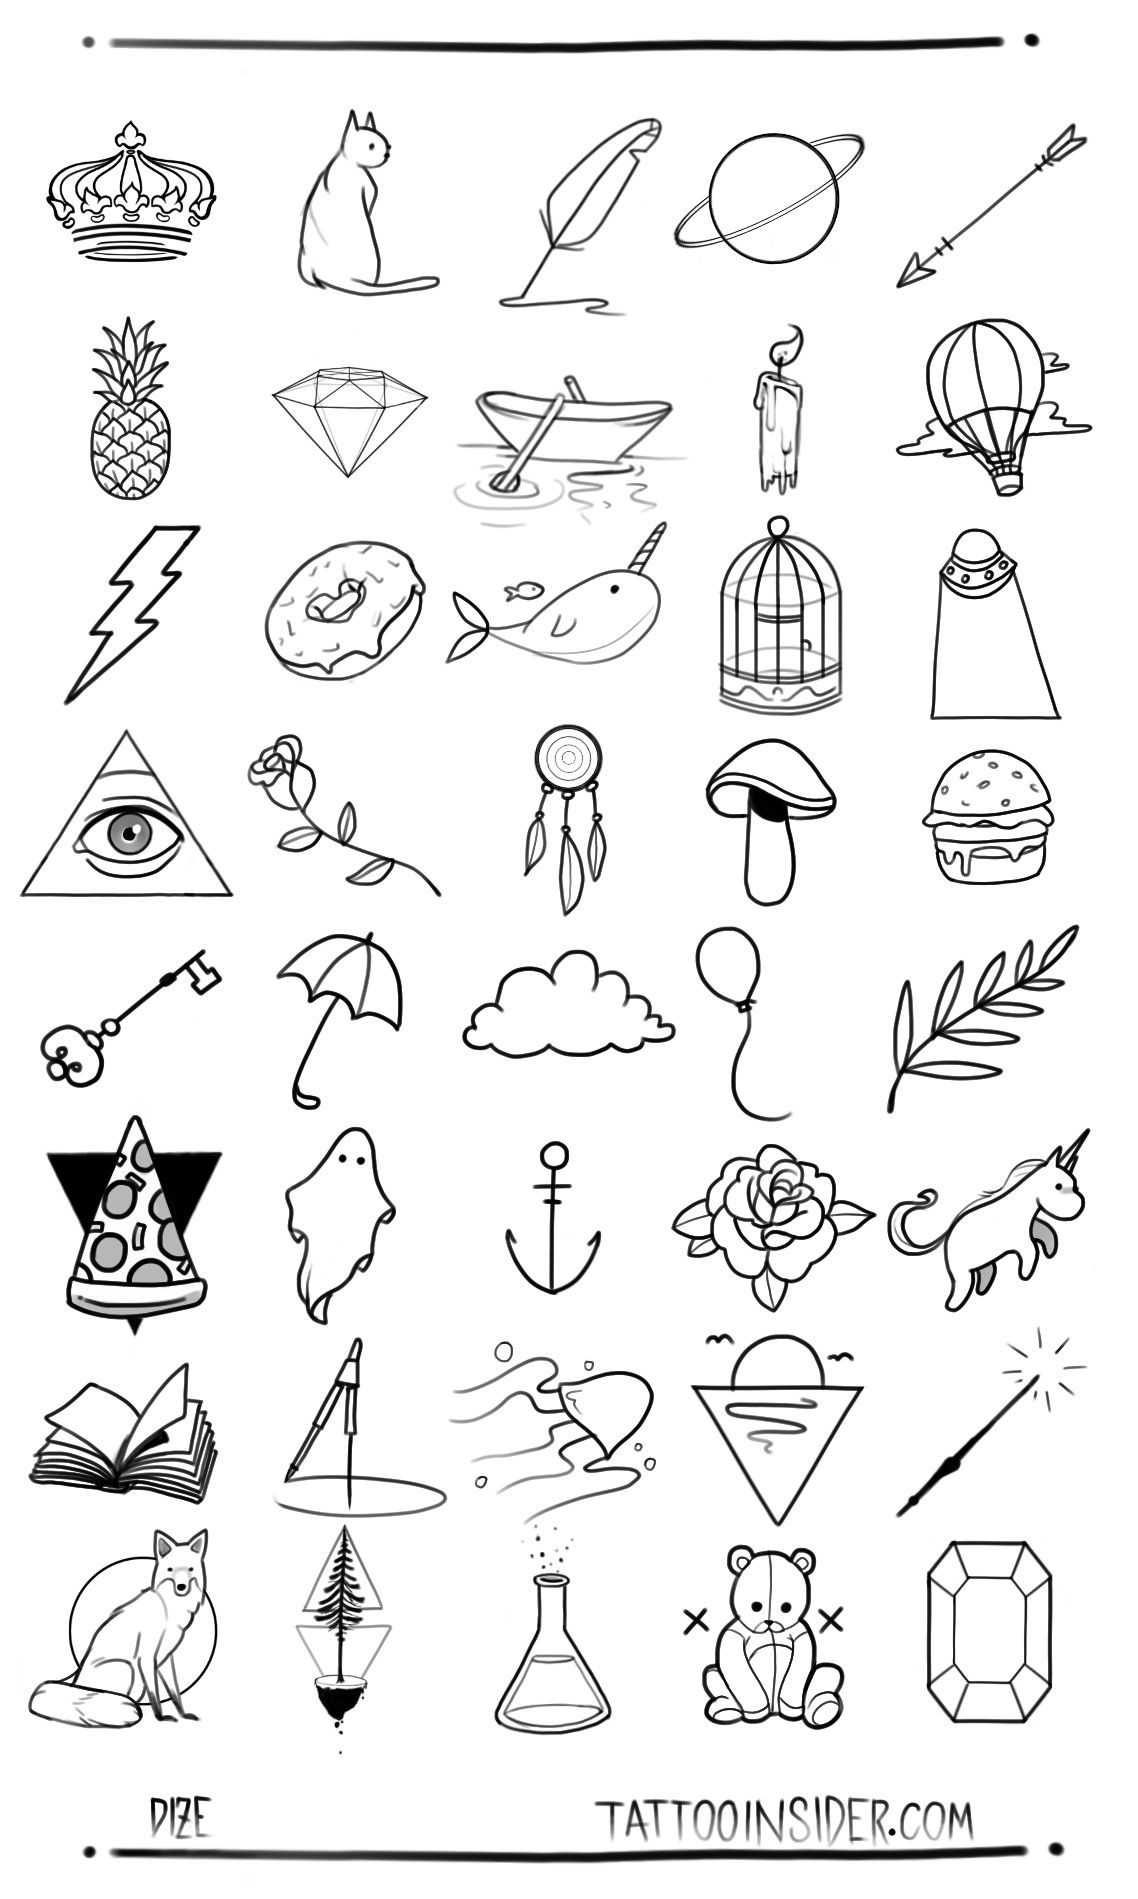 80 Free Small Tattoo Designs